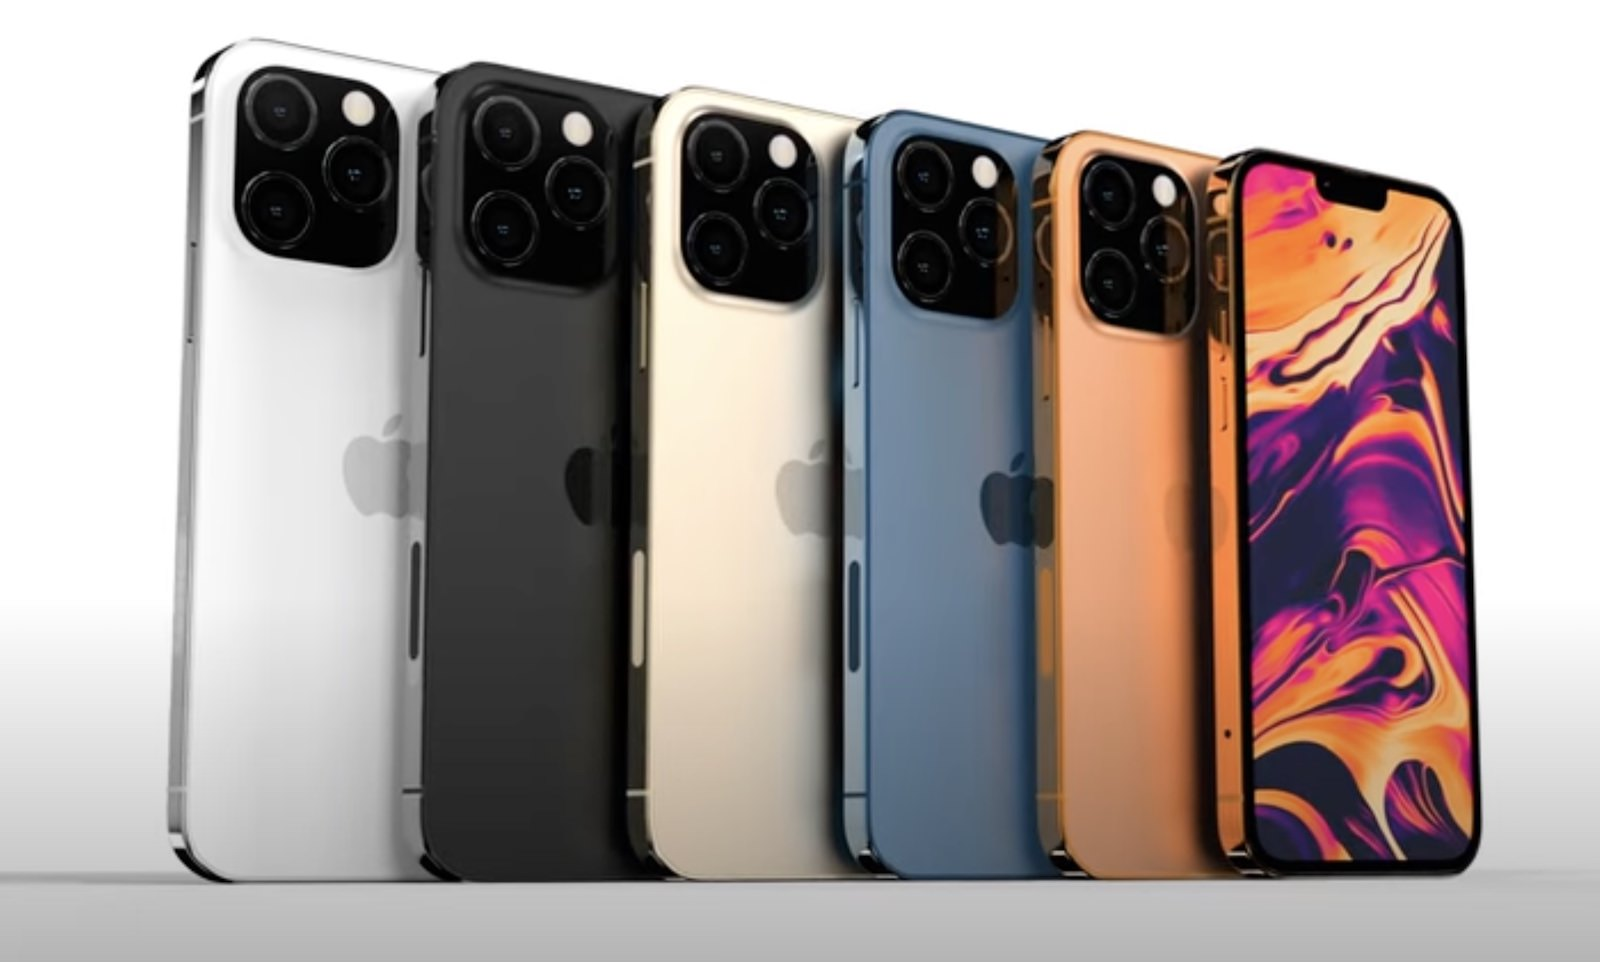 Iphone 13 color lineup images